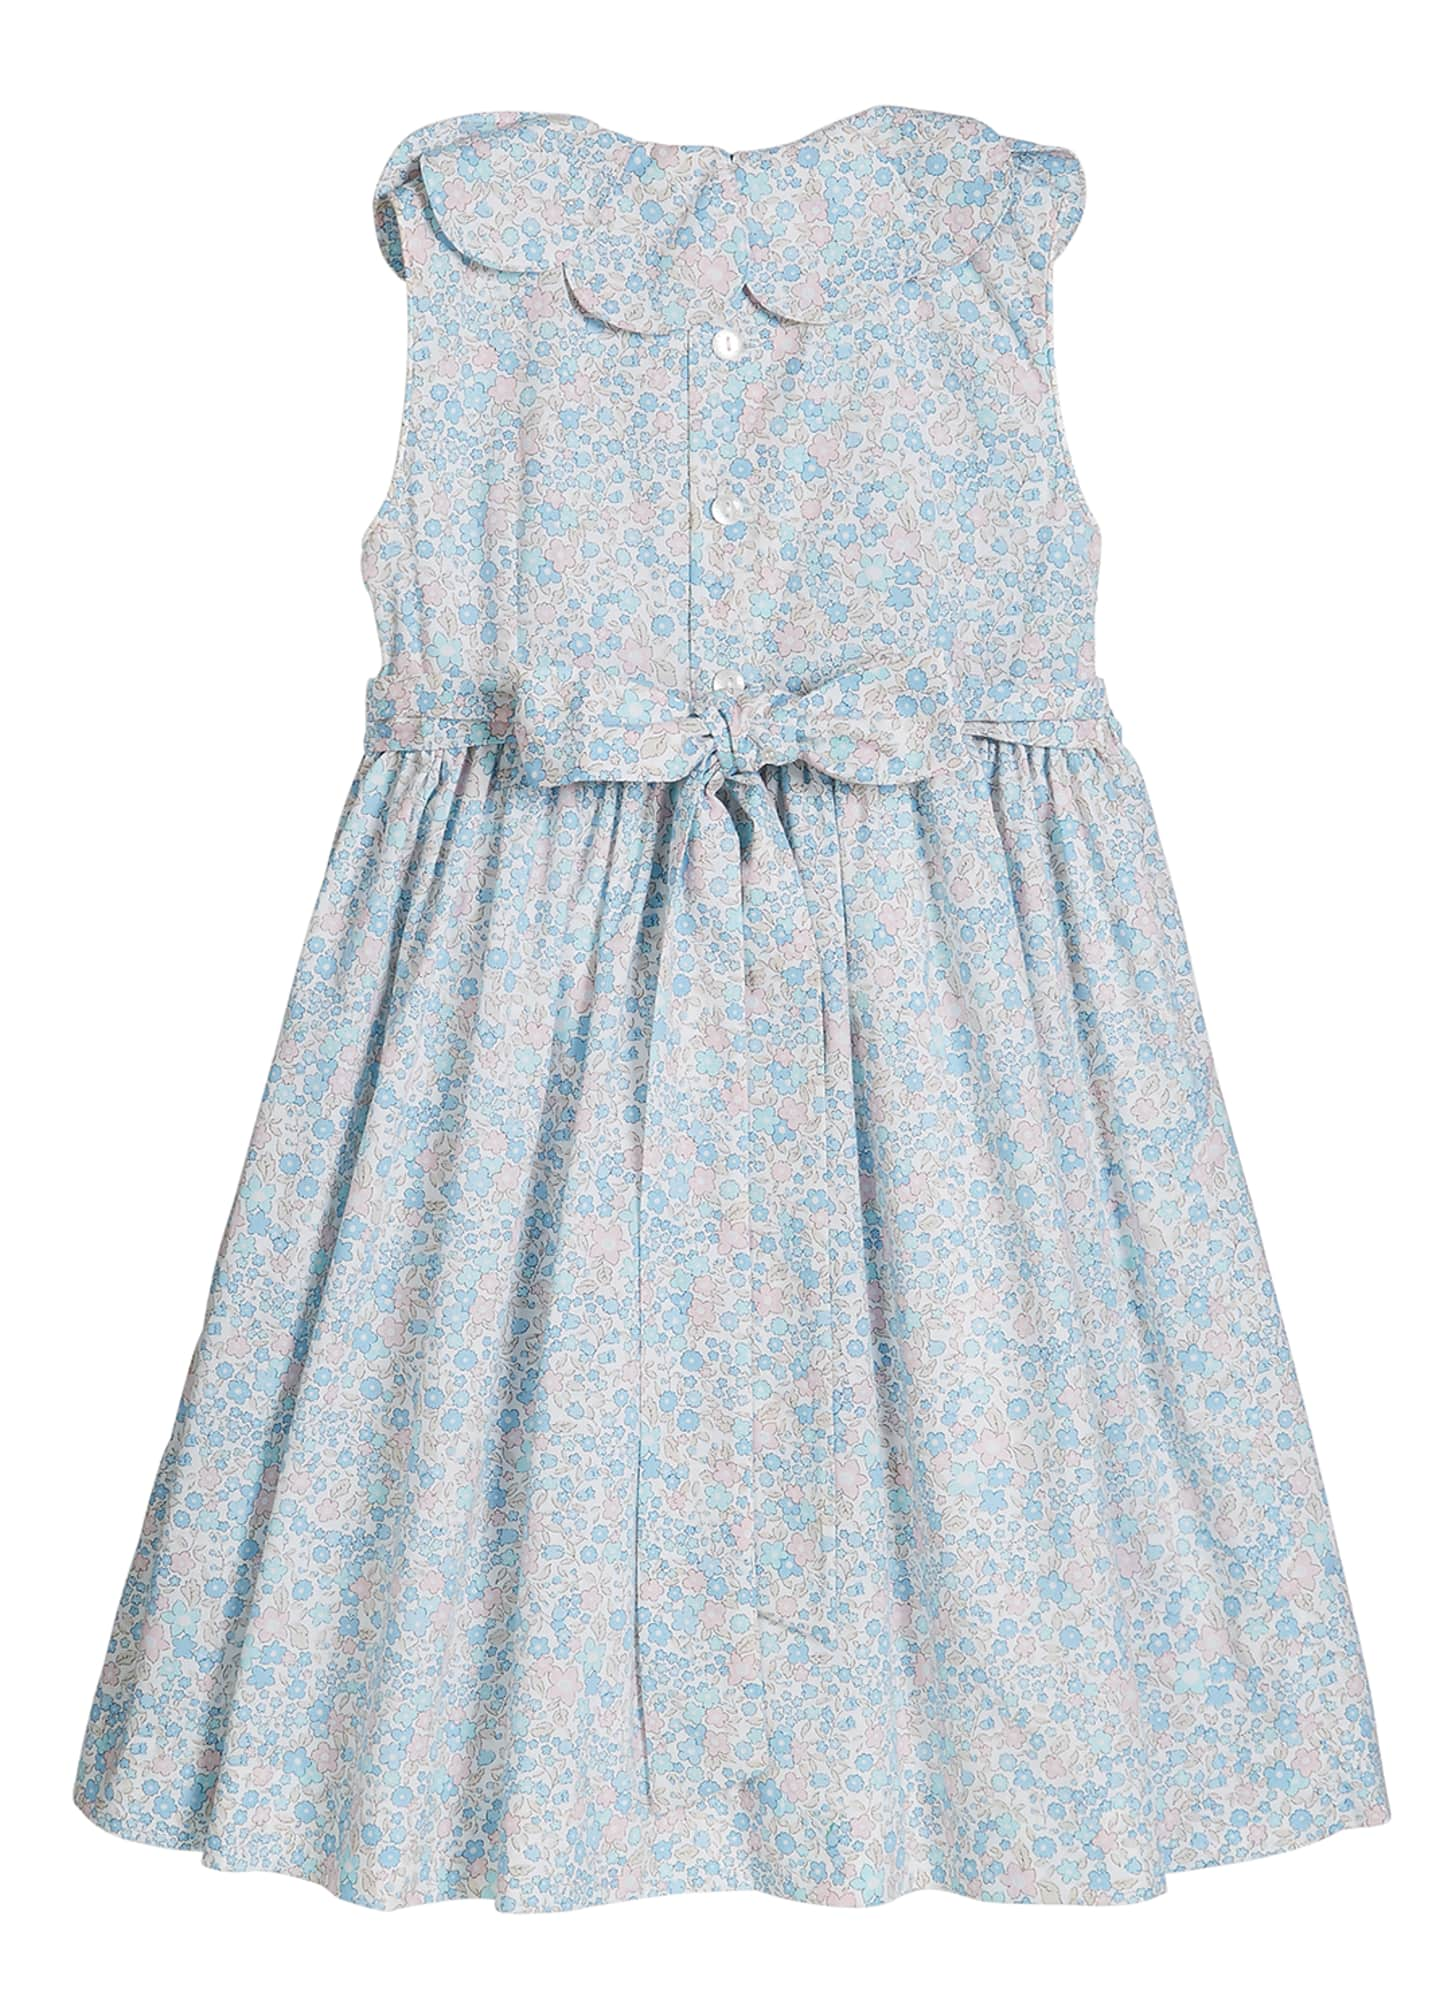 Image 2 of 2: Girl's Floral Print Petal Collar Smocked Dress, Size 4-6X